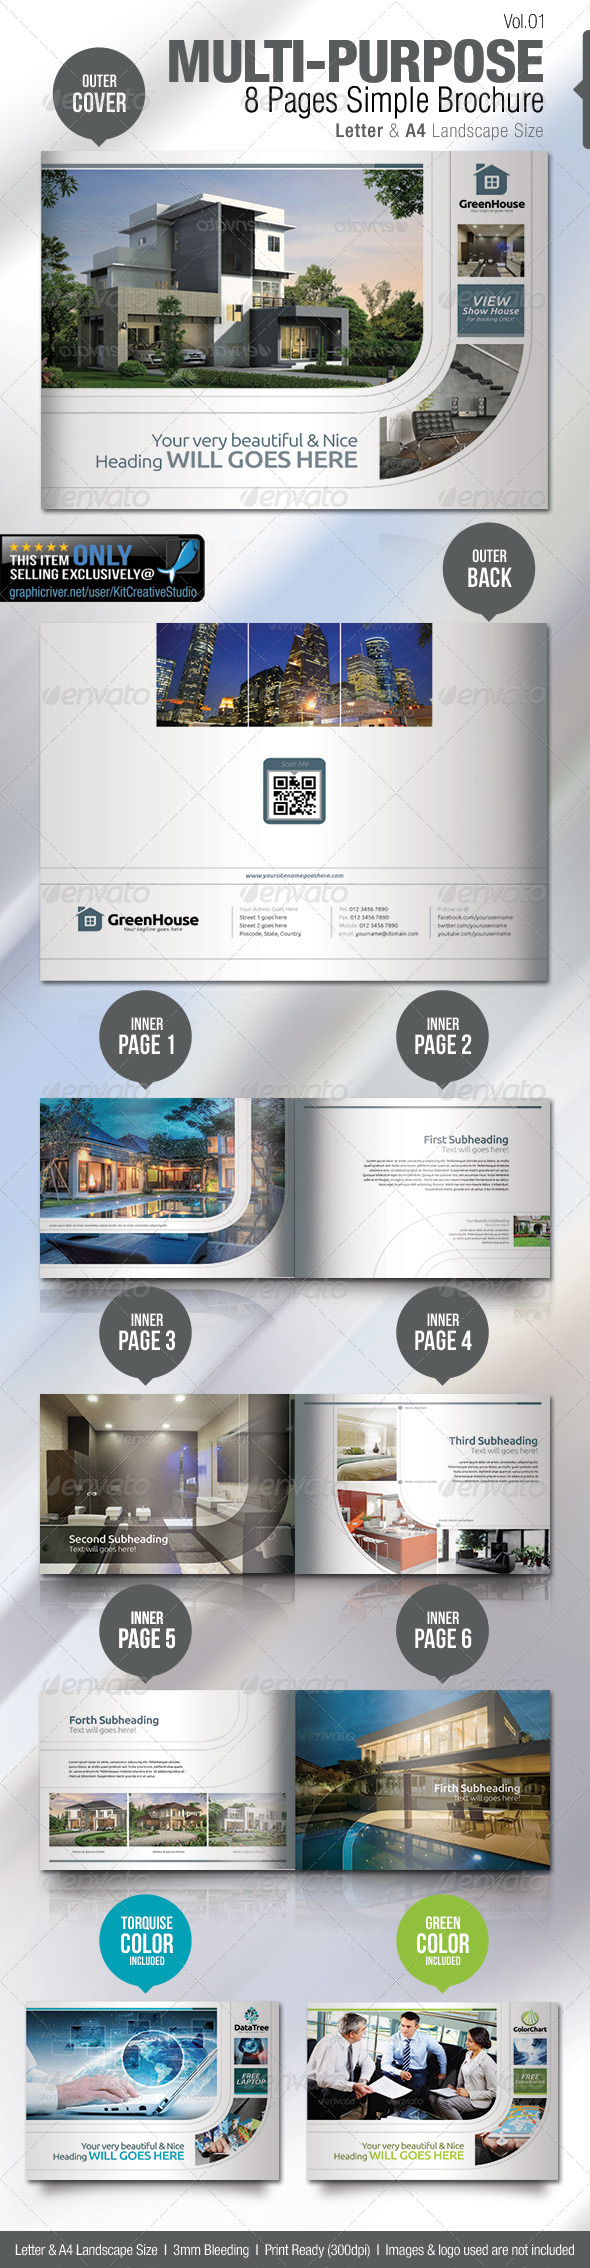 GraphicRiver Multi-purpose 8 Pages Simple Brochure 5307697